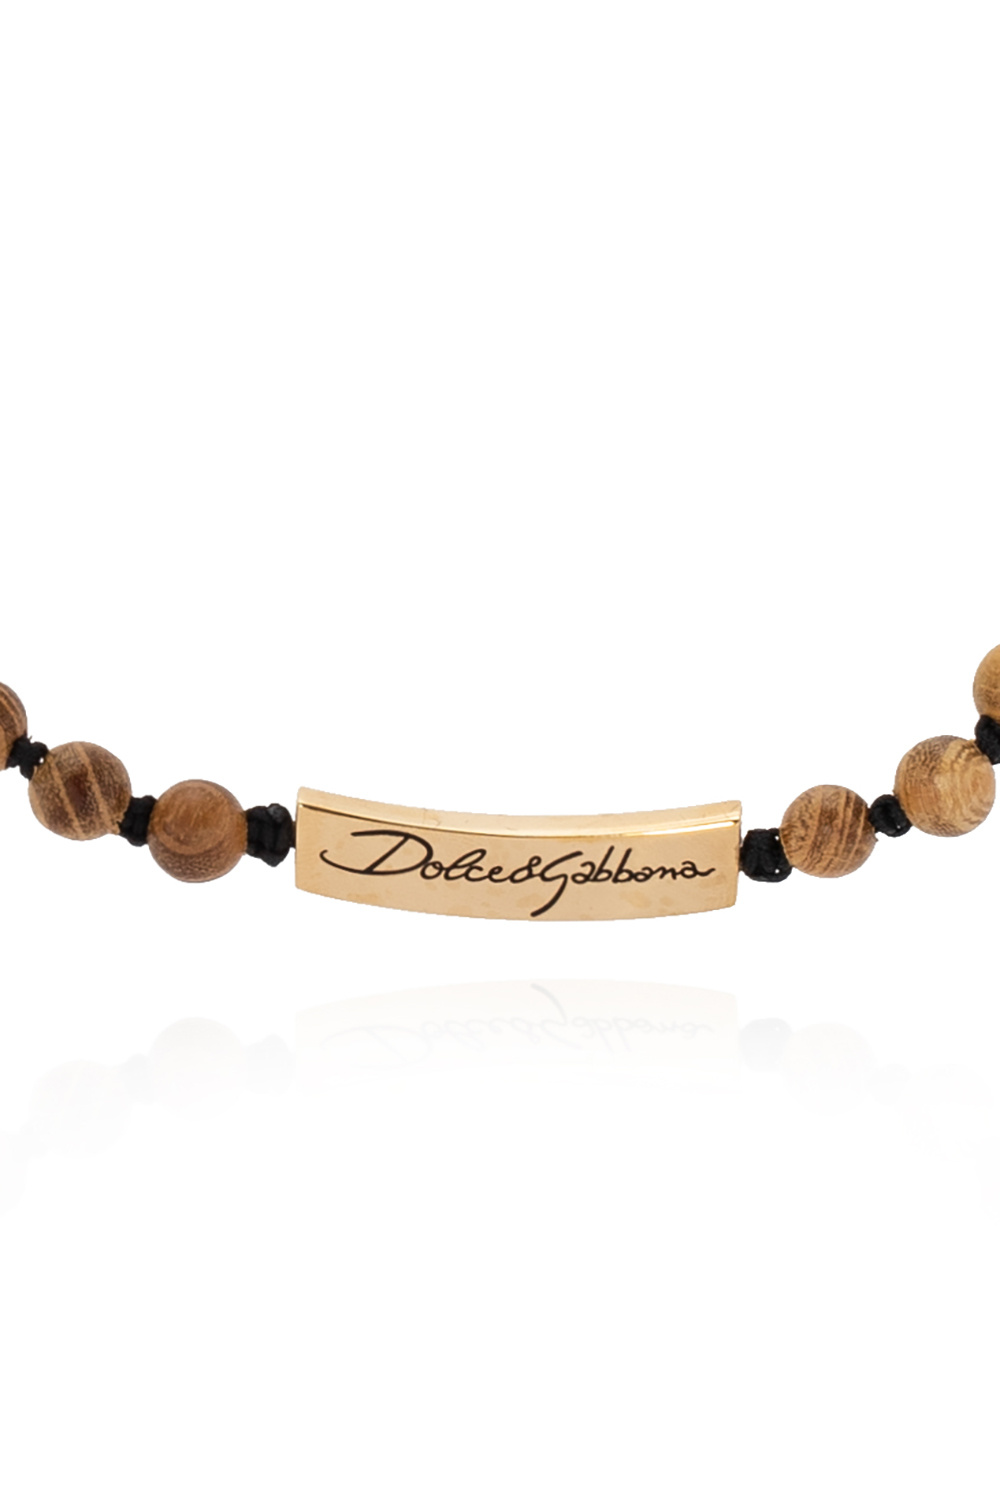 Dolce & Gabbana Necklace with logo